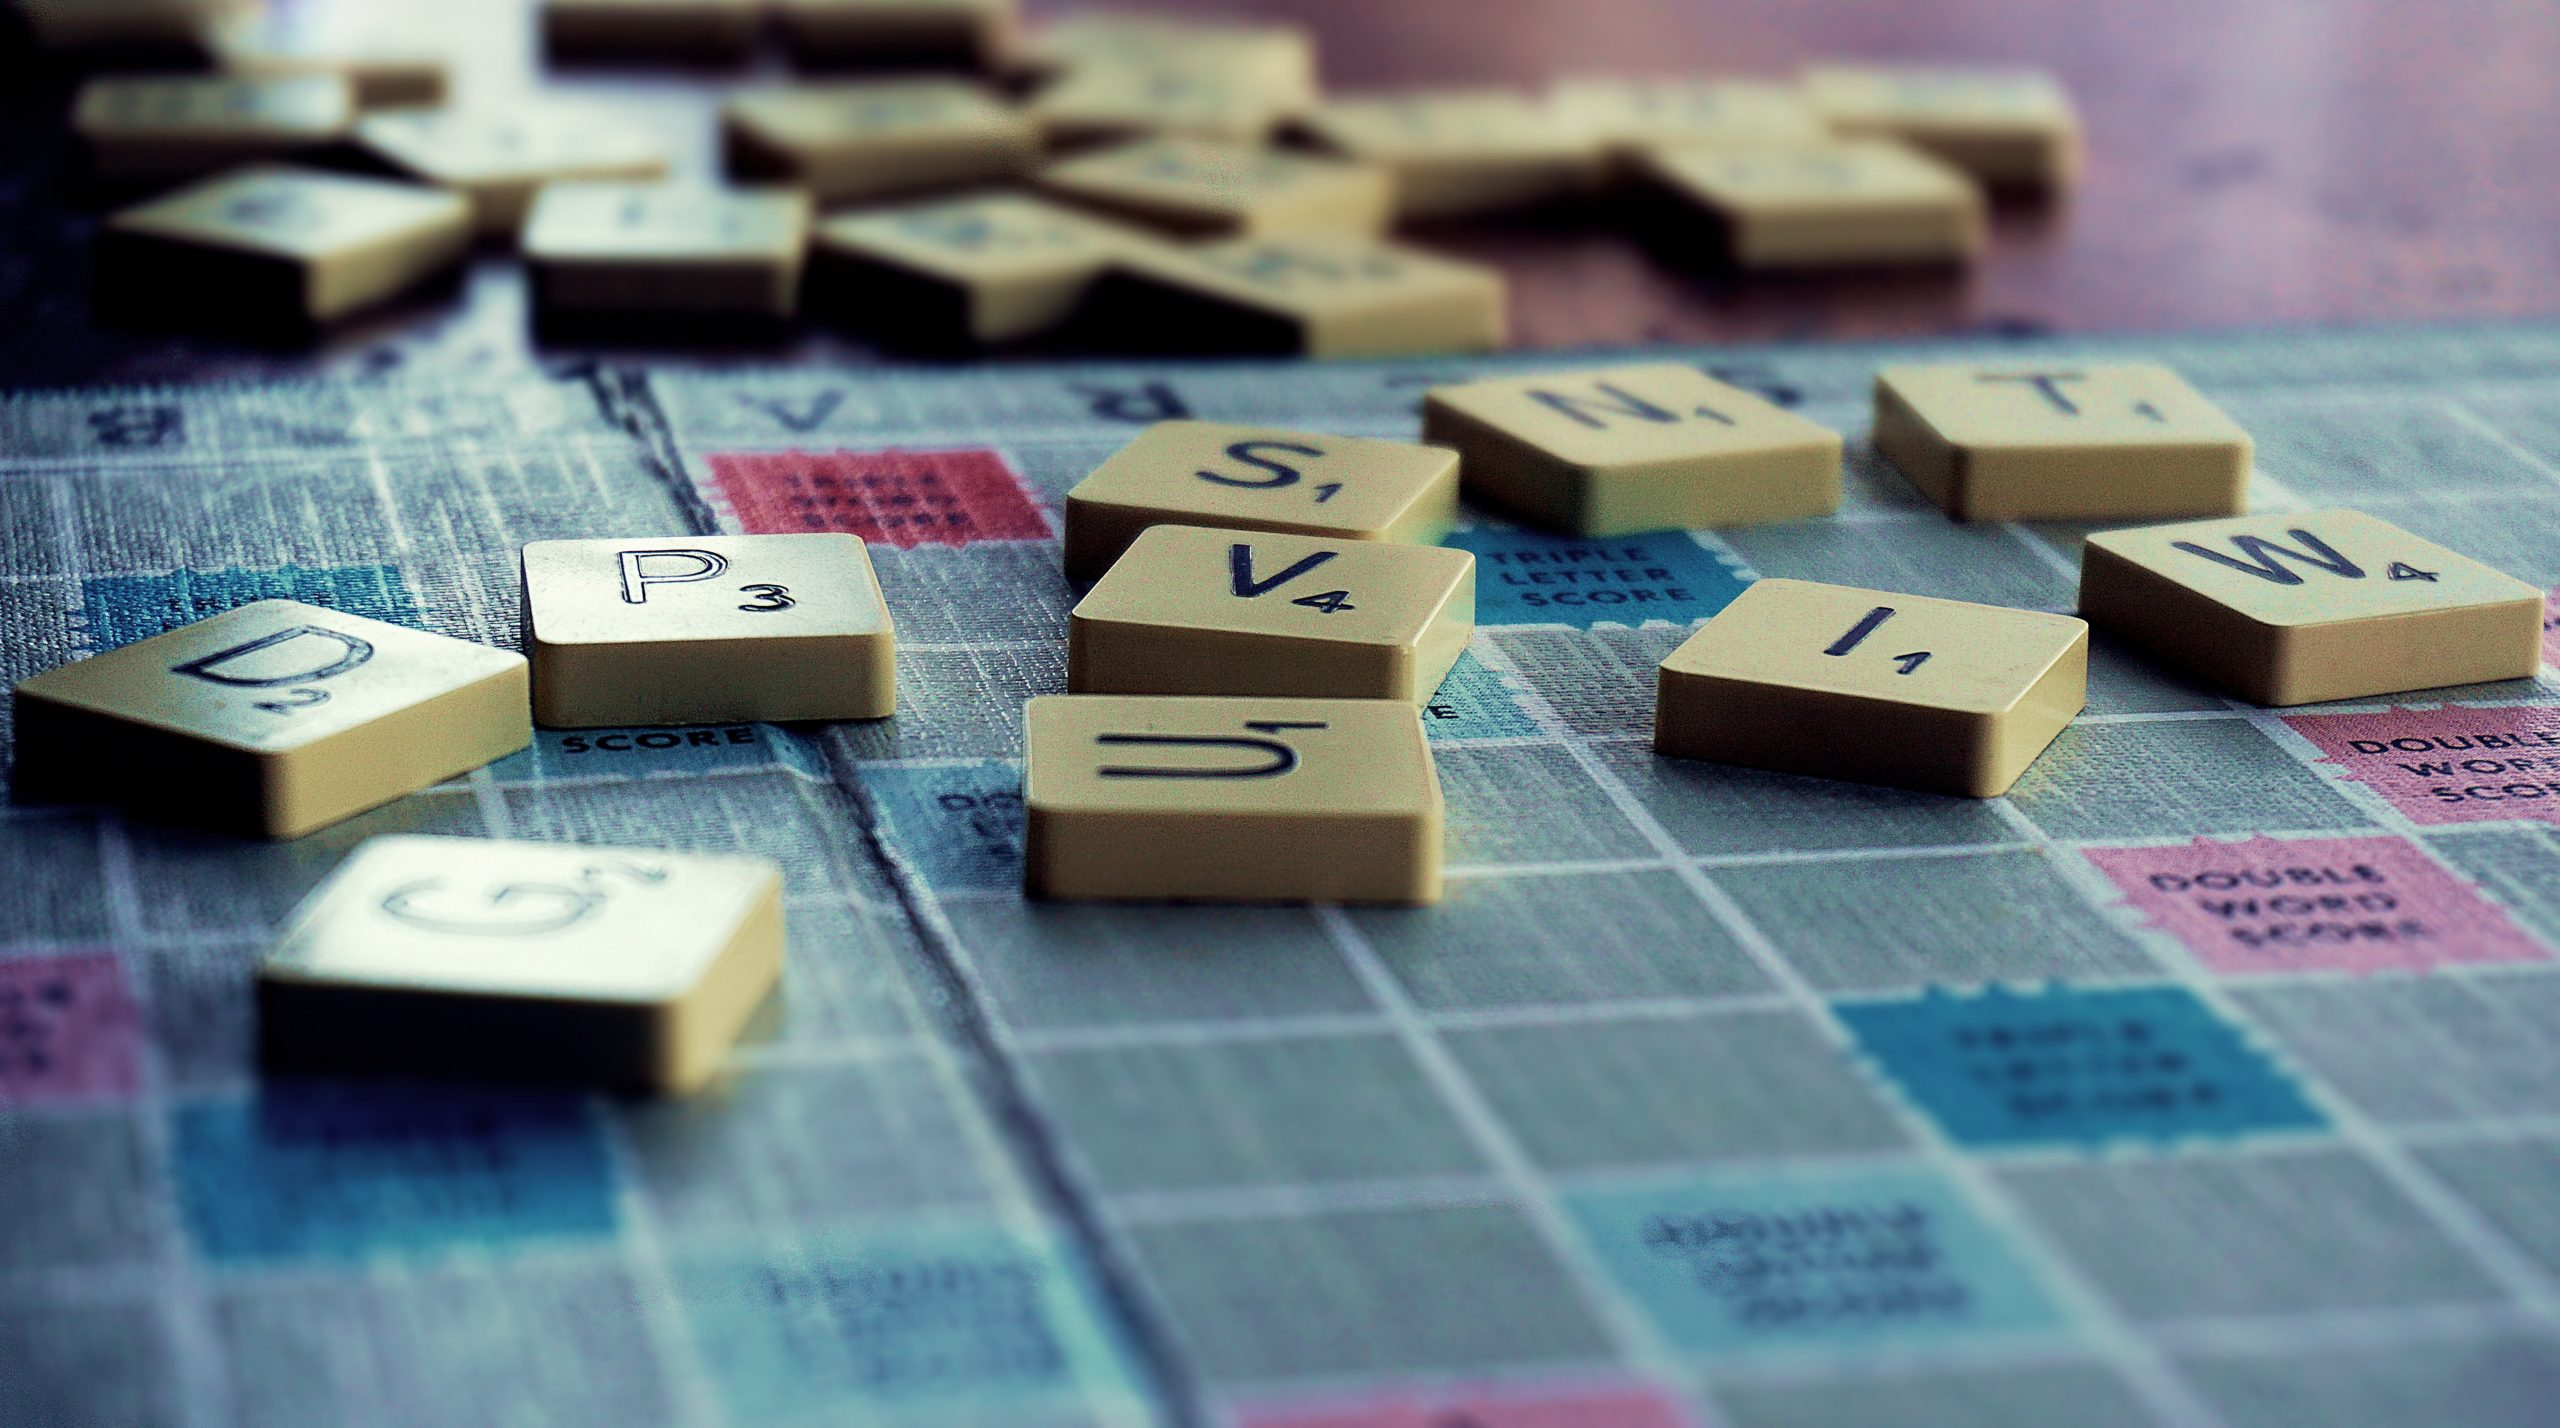 word game letters on board